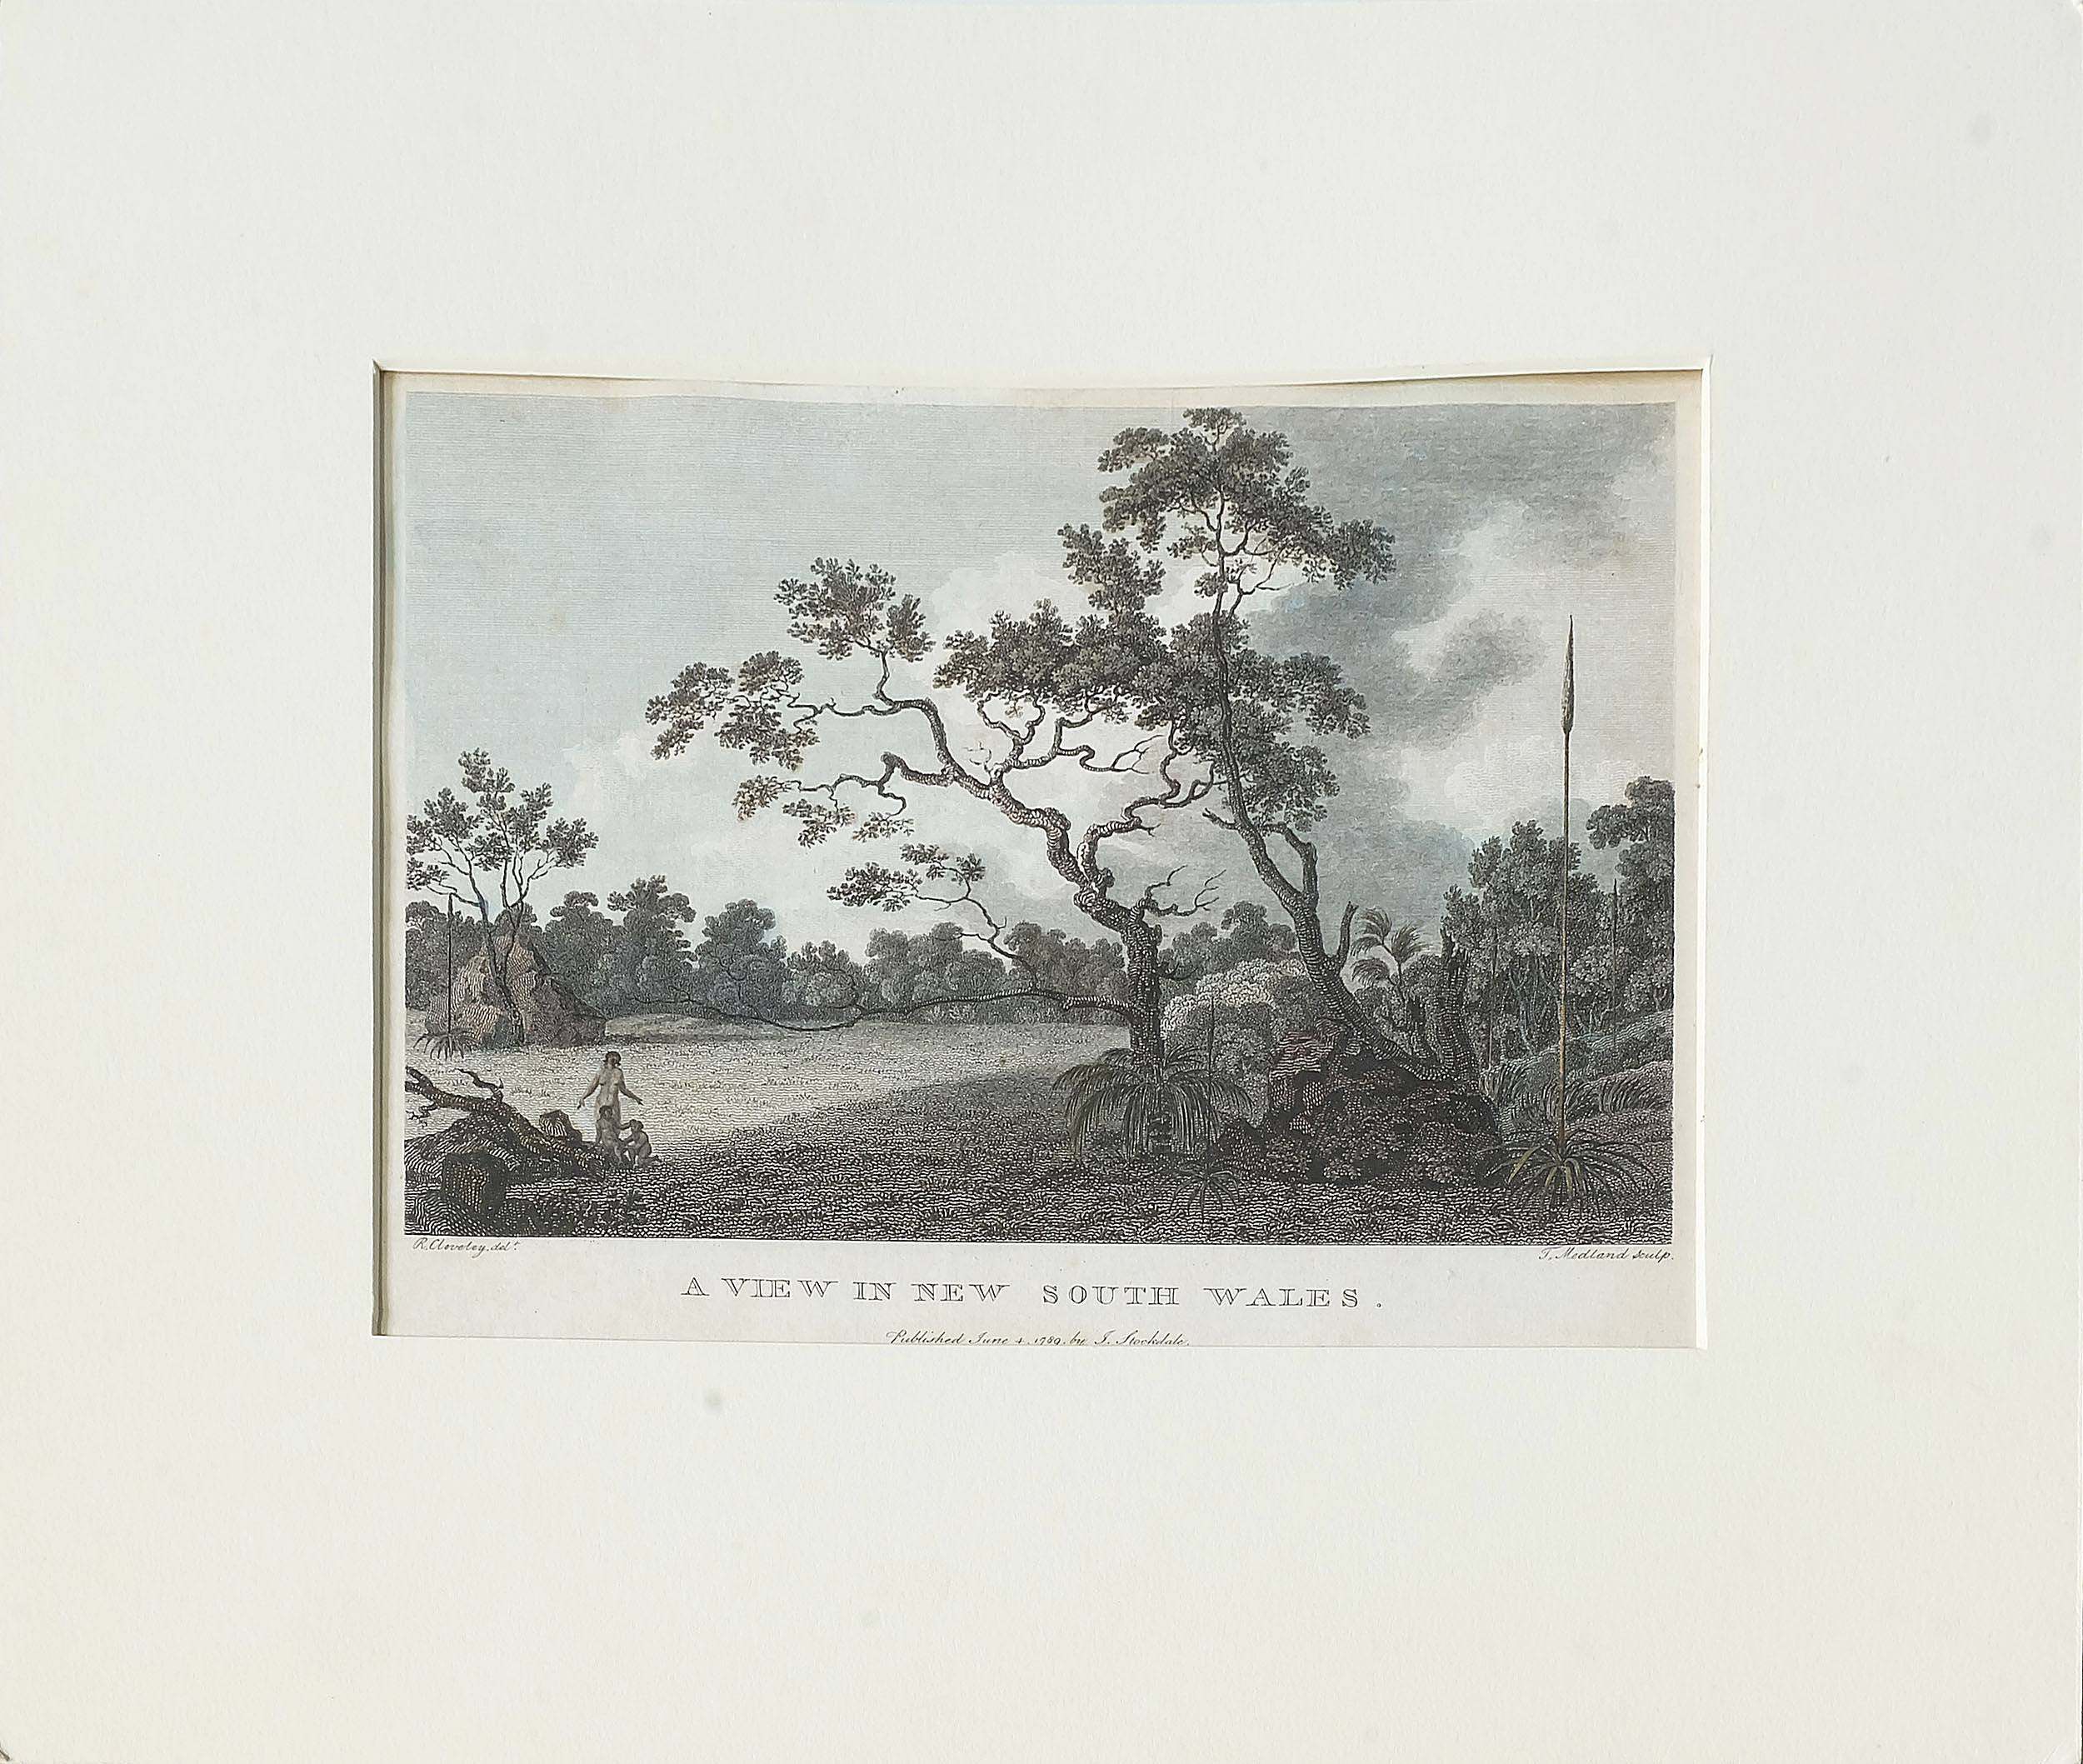 'Robert Cleveley (1747-1809) A View in New South Wales, Hand Coloured Engraving, Circa 1789'